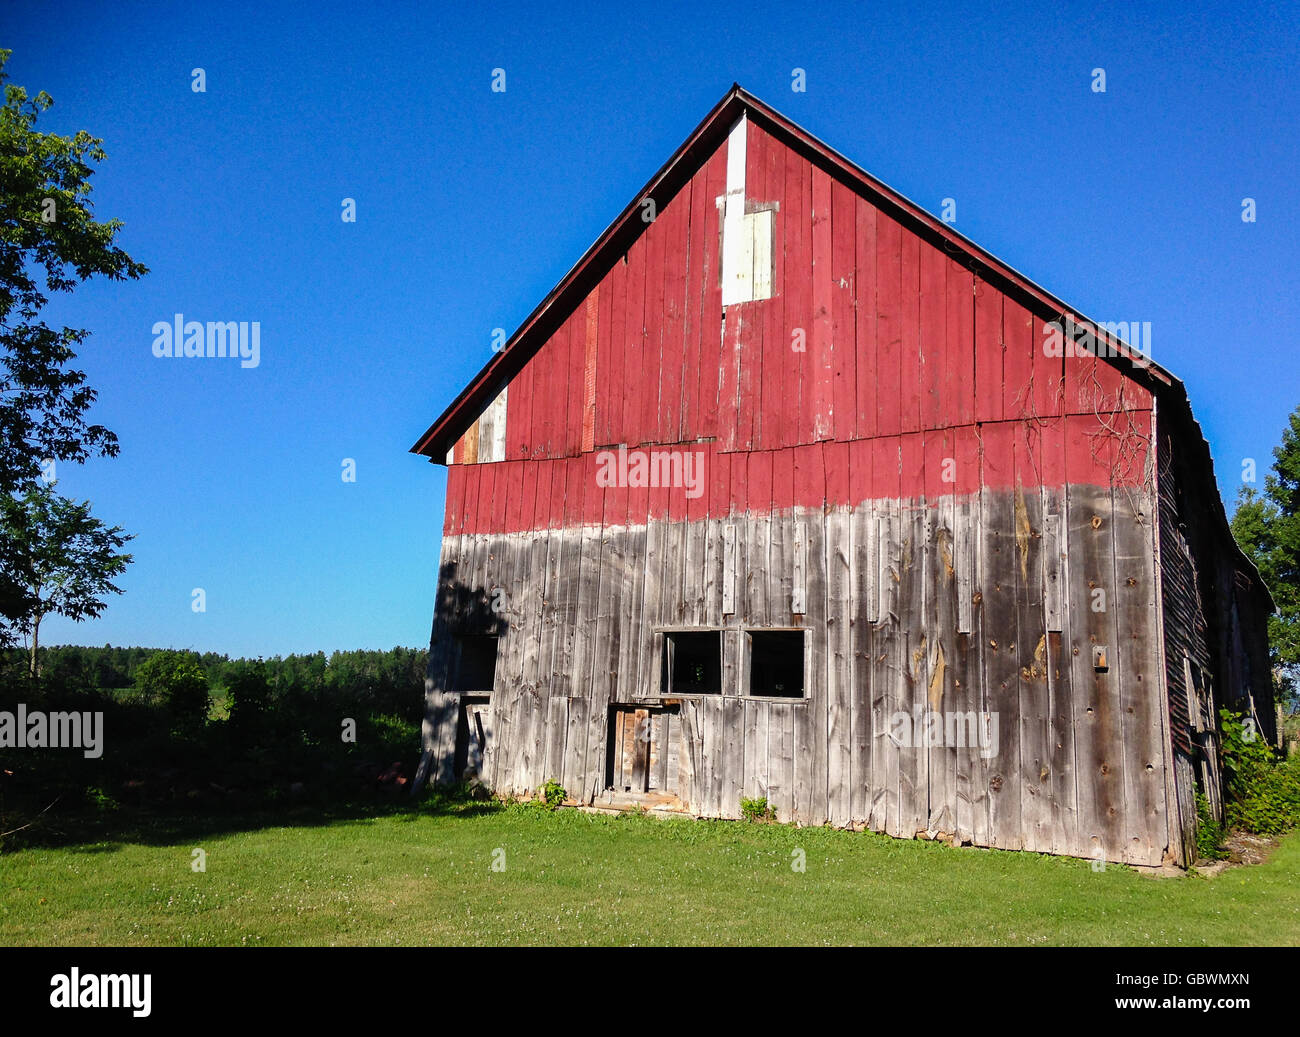 Rustic barn in Vermont - Stock Image